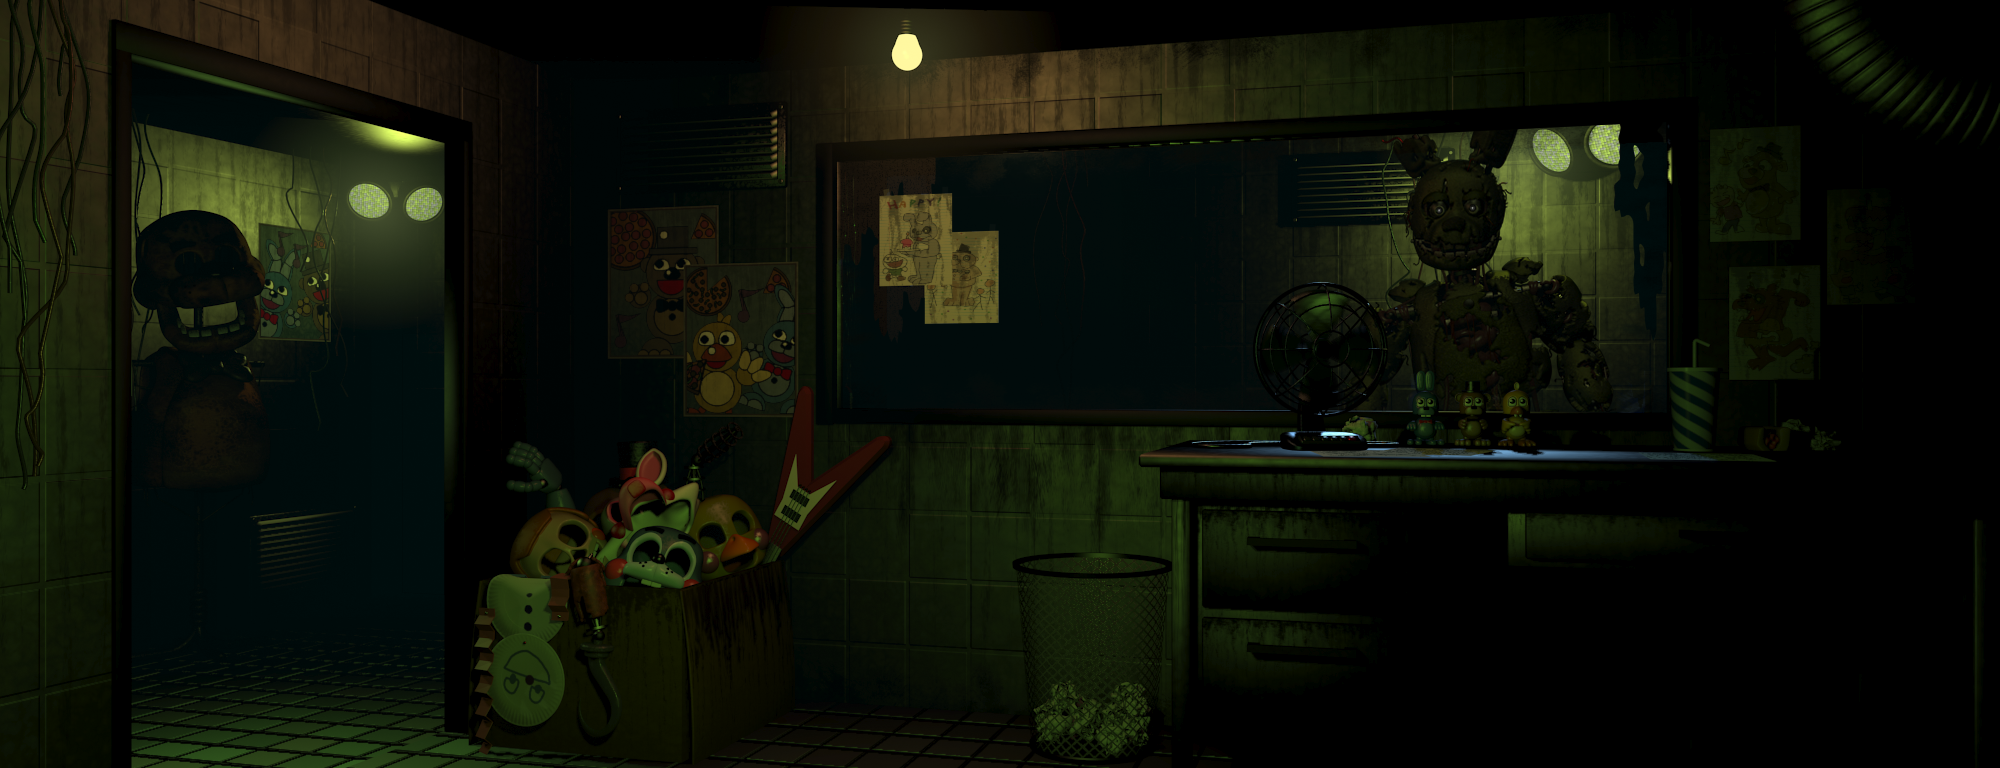 Springtrap In Five Nights